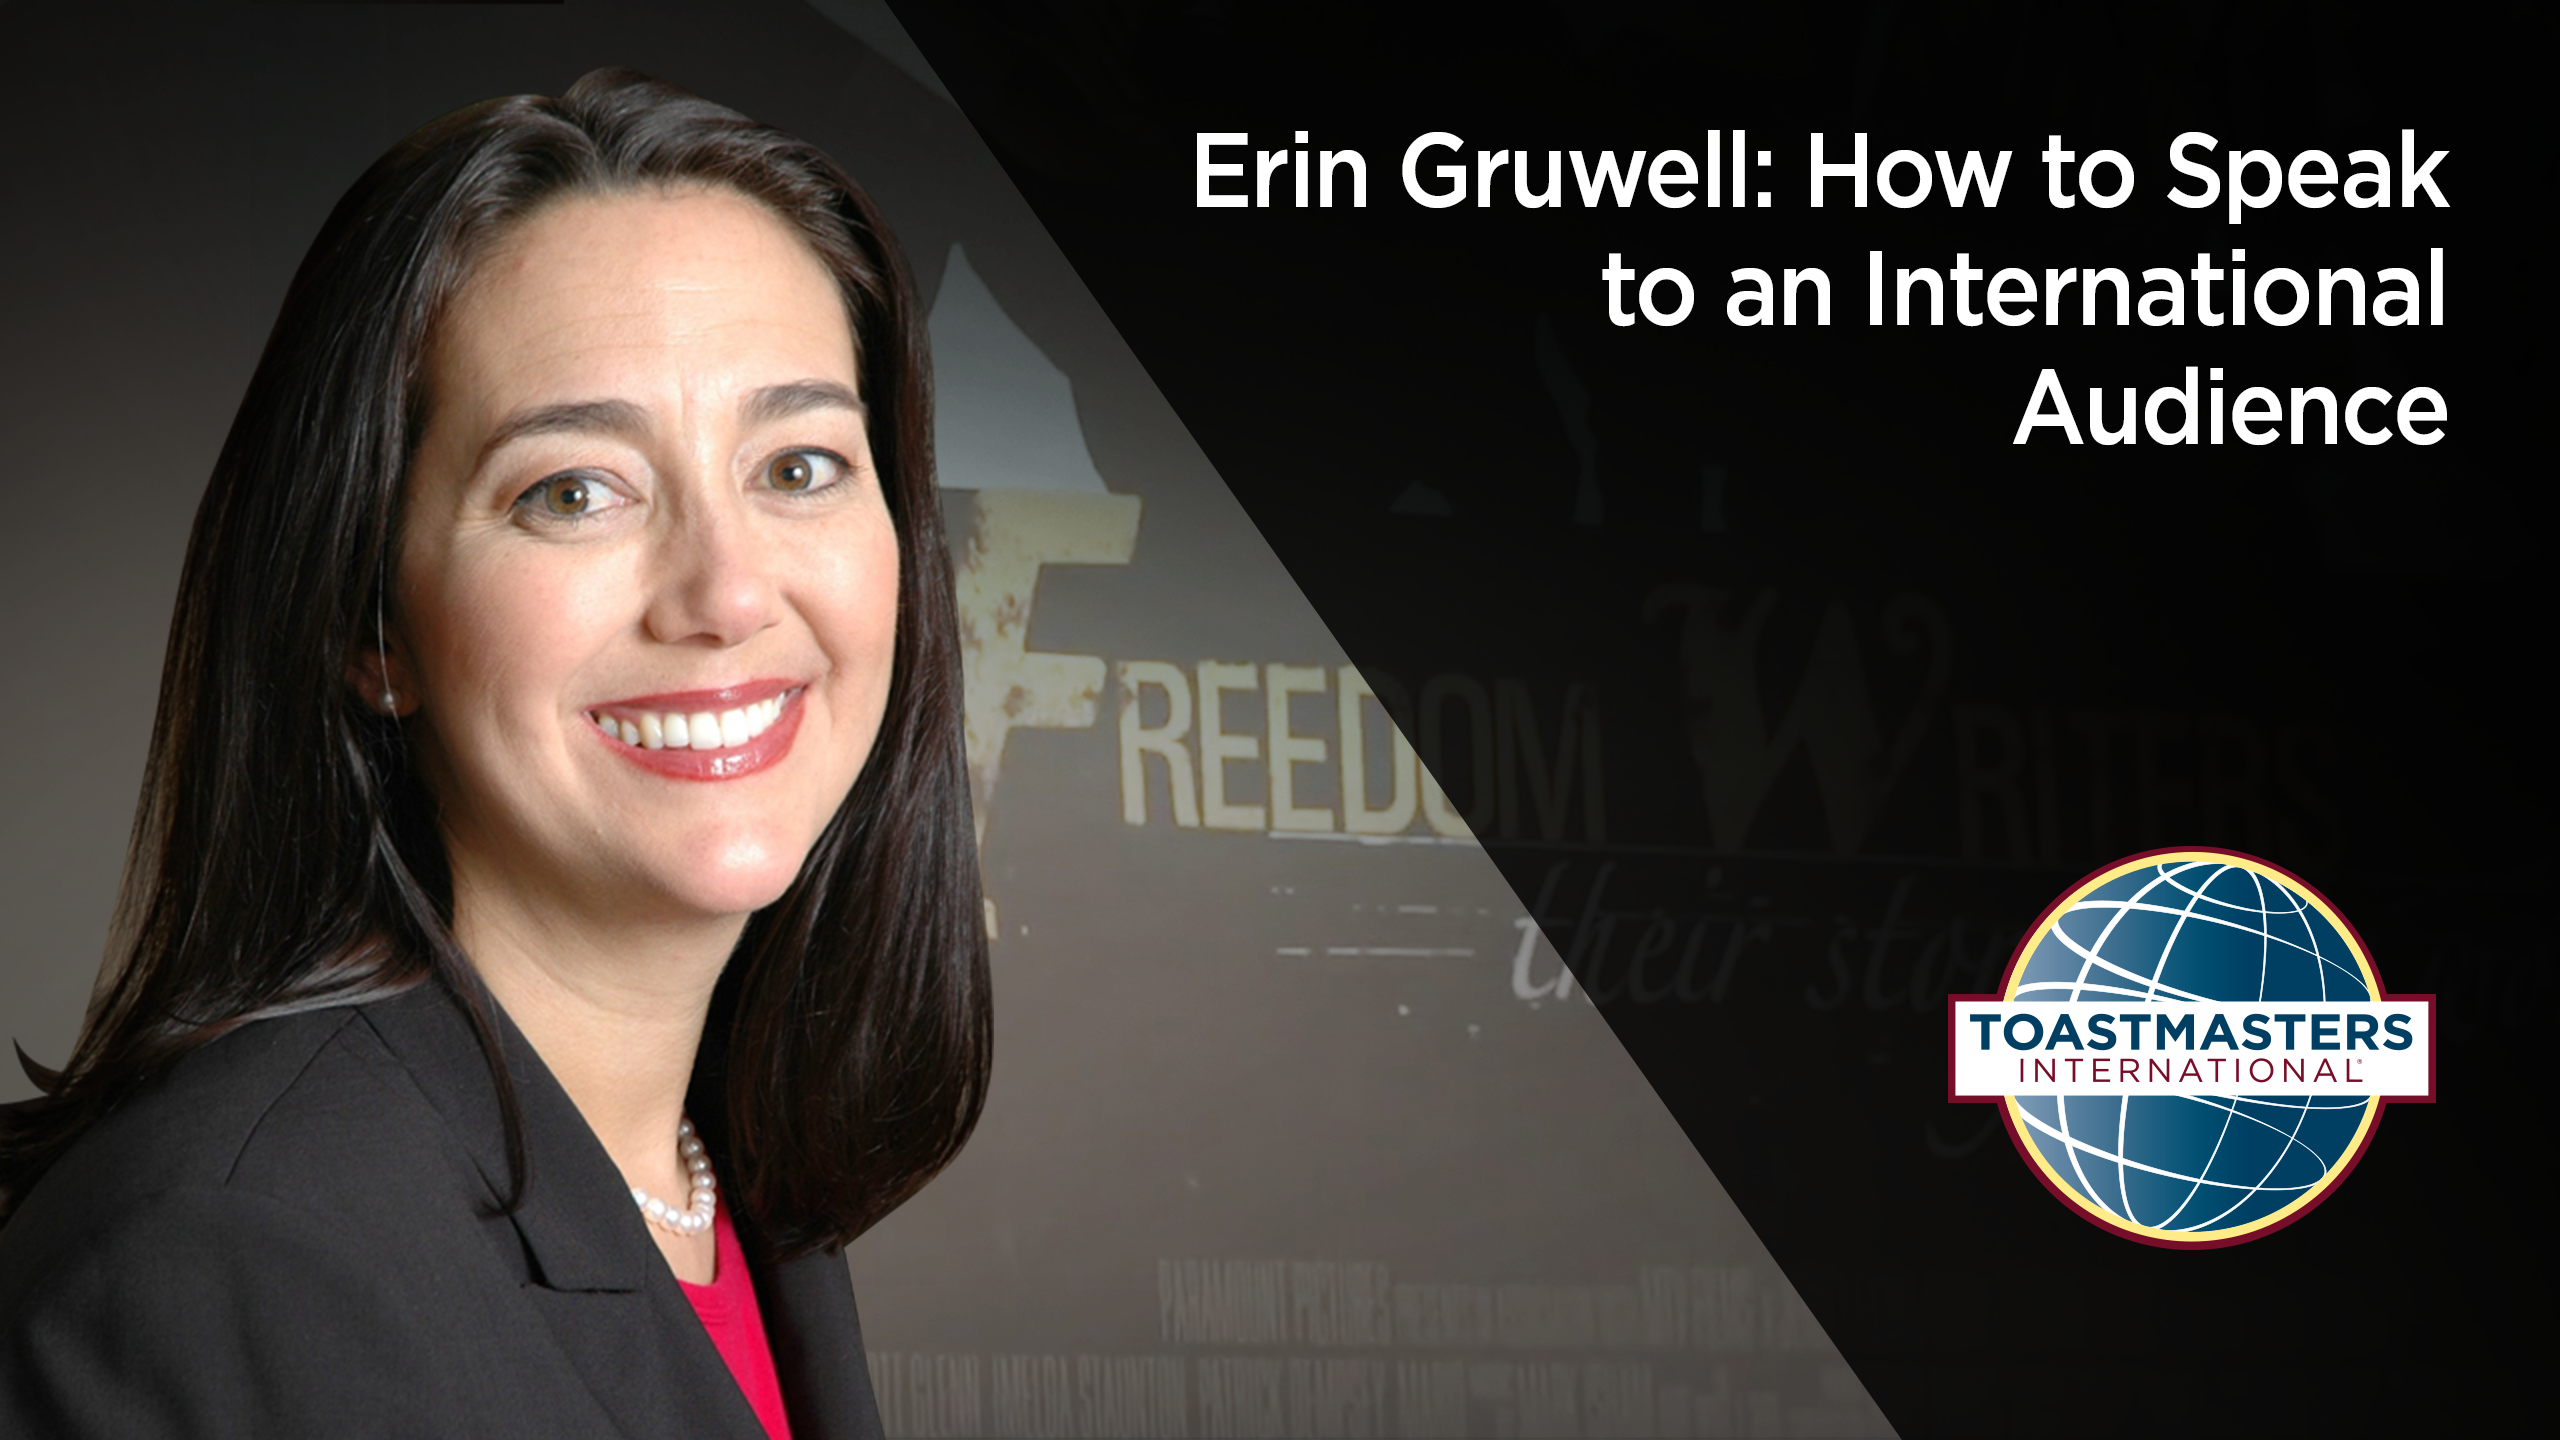 Erin-Gruwell-How-to-Speak-to-an-International-Audience